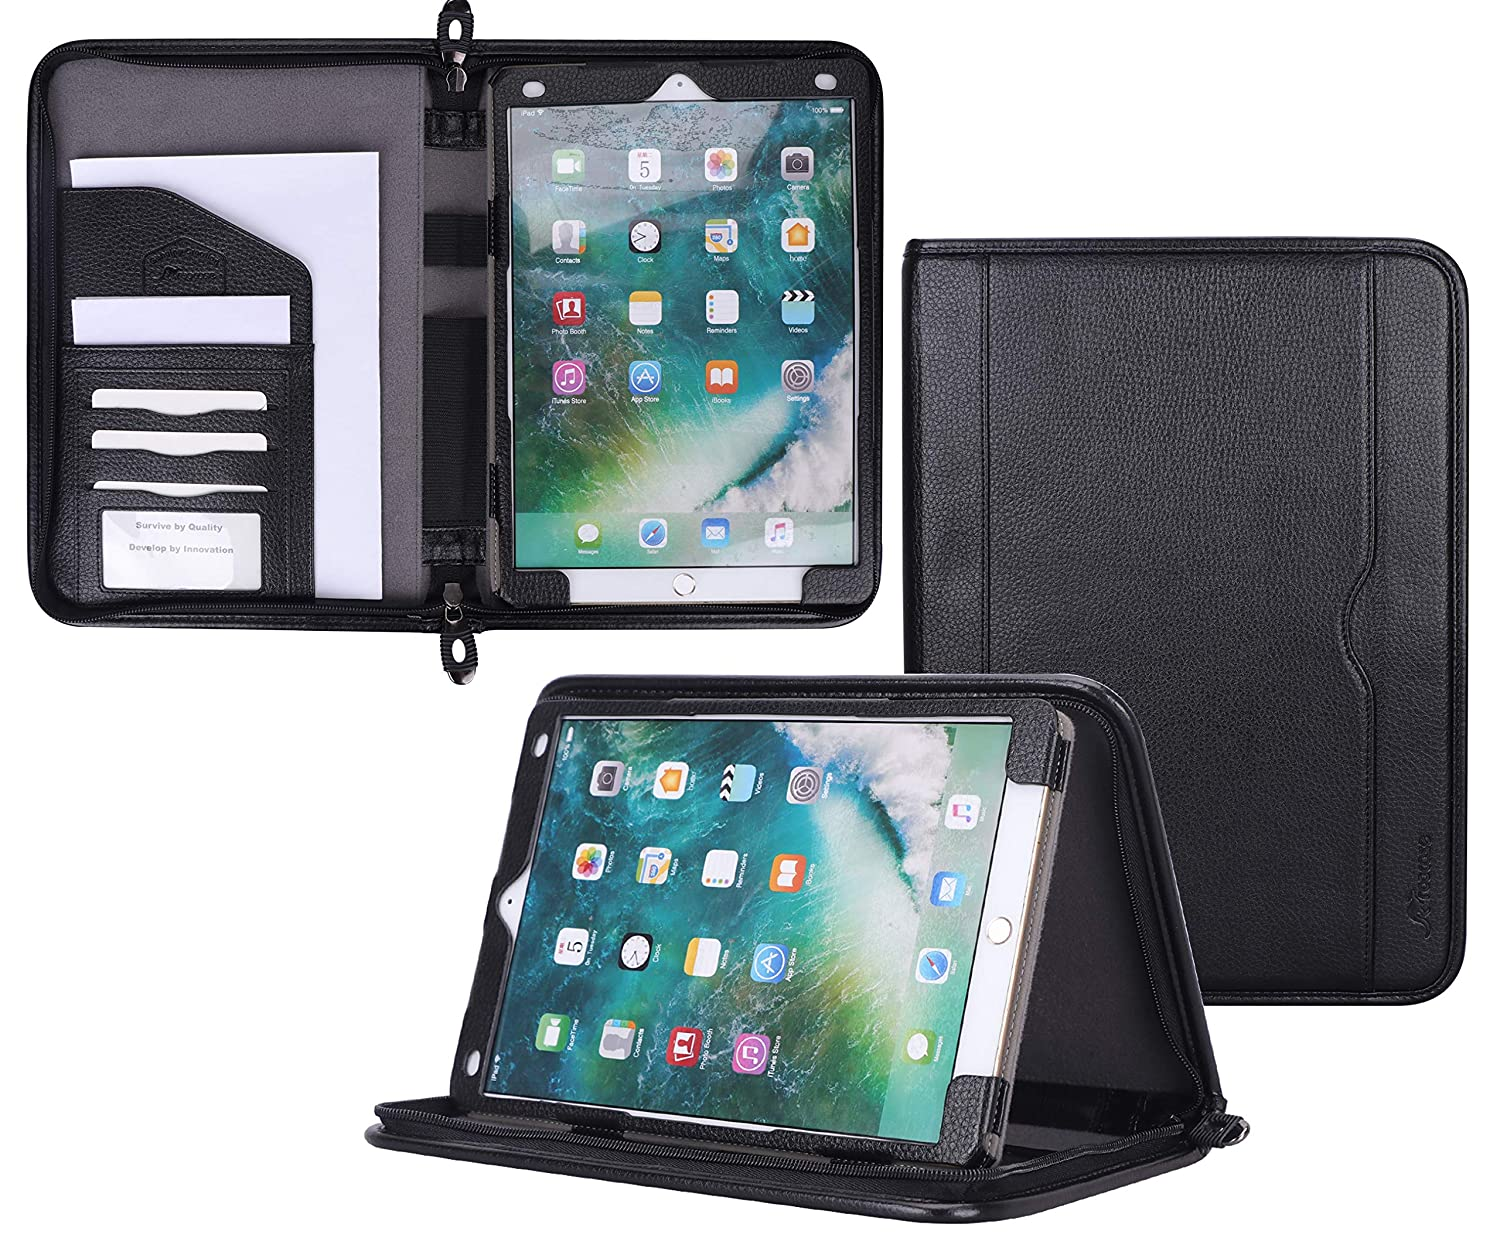 promo code f73ae a1273 rooCASE iPad Pro 10.5 Case - Premium Leather Executive Portfolio Case -  Detachable iPad Sleeve with Stand, Document and Card Holder, Apple Pencil  ...